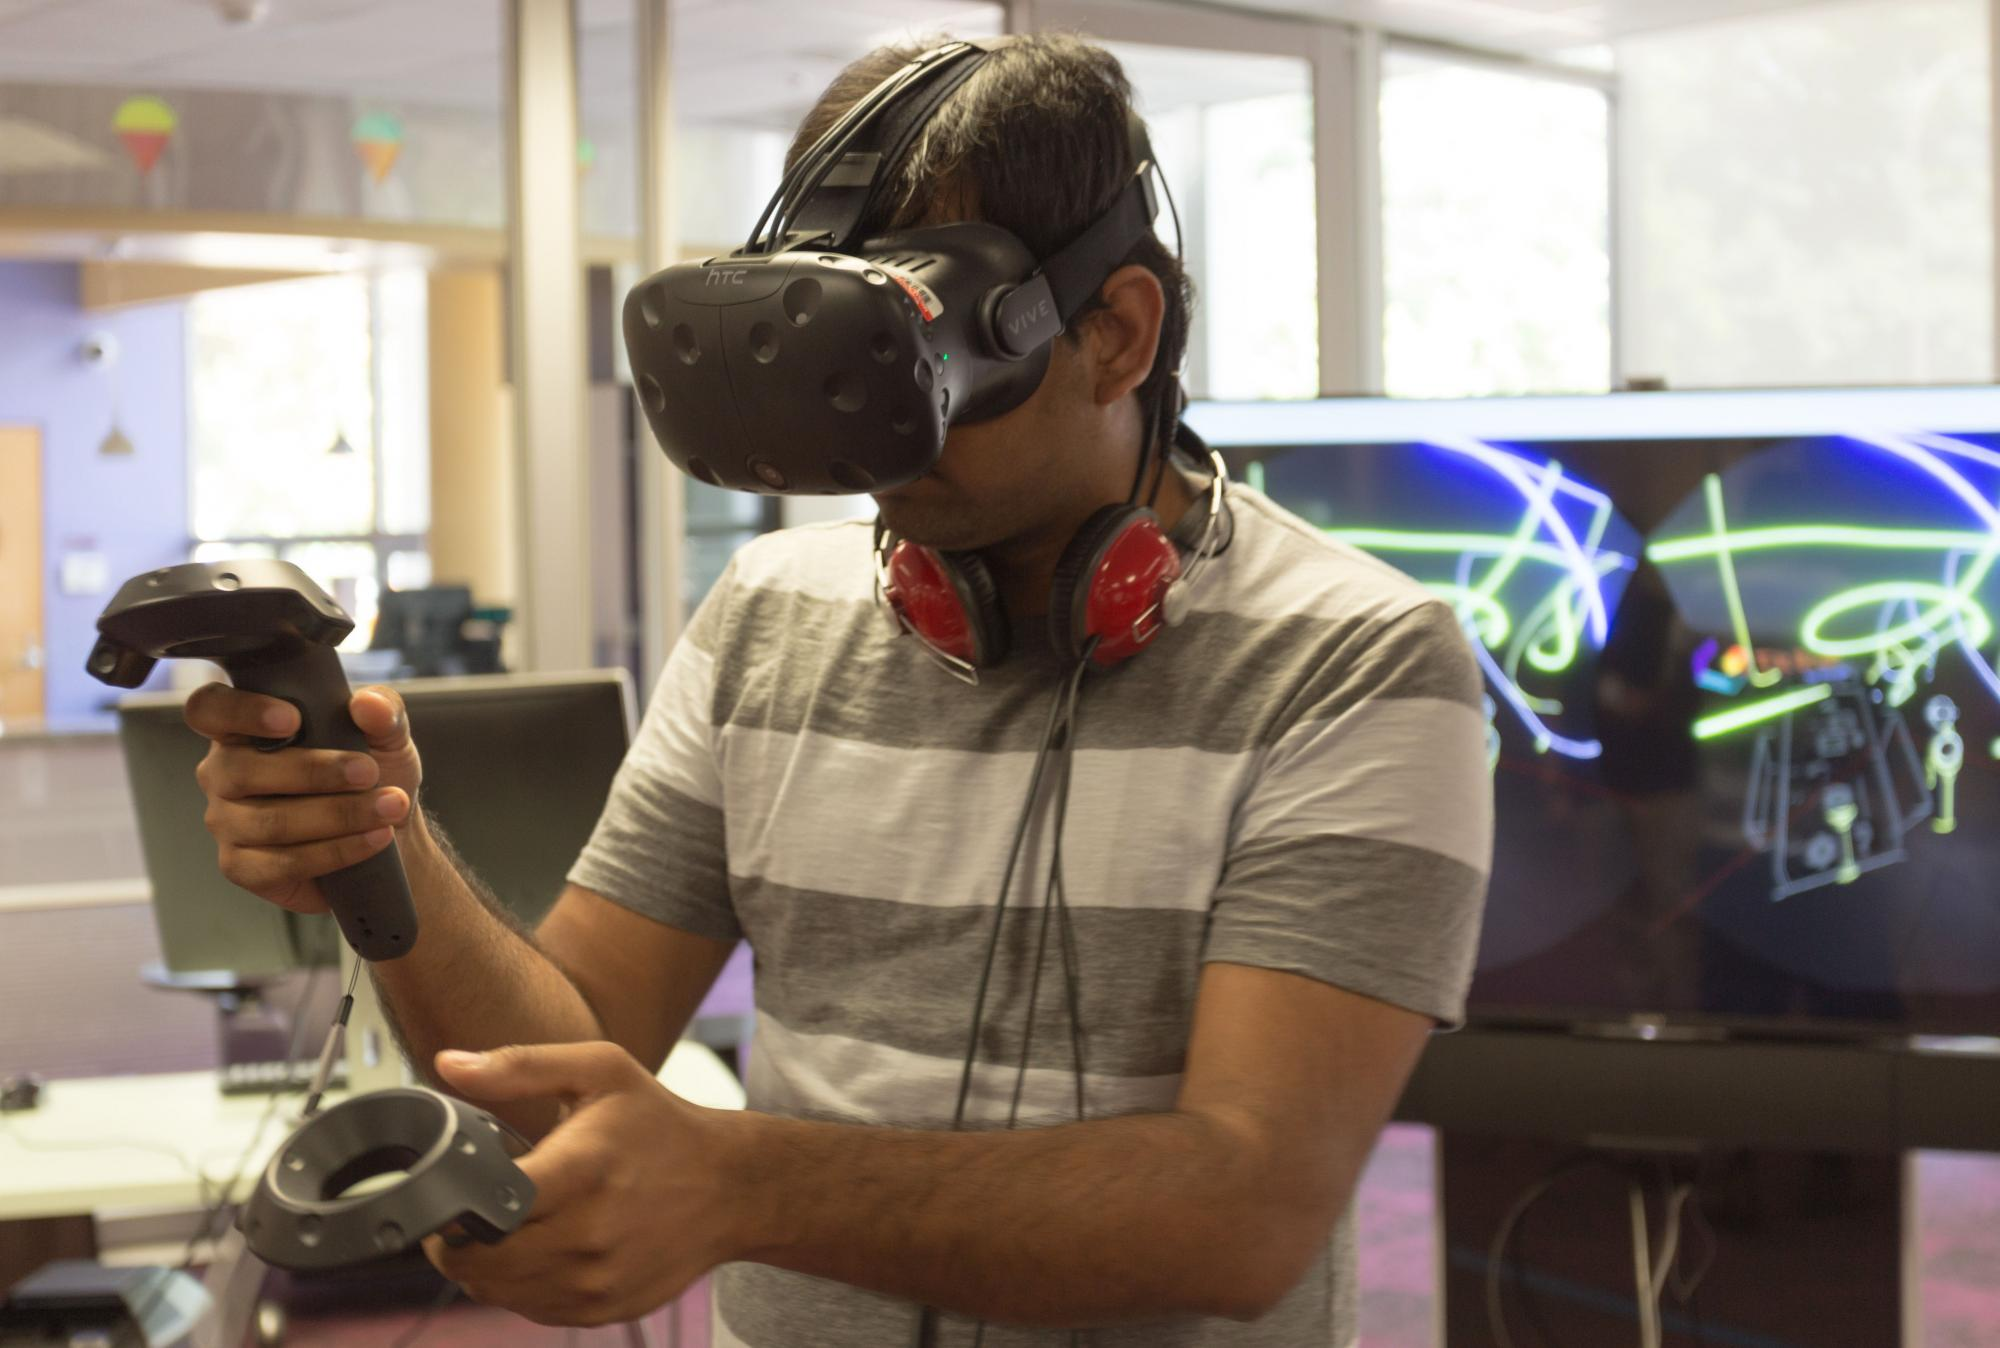 Student using the virtual reality headset